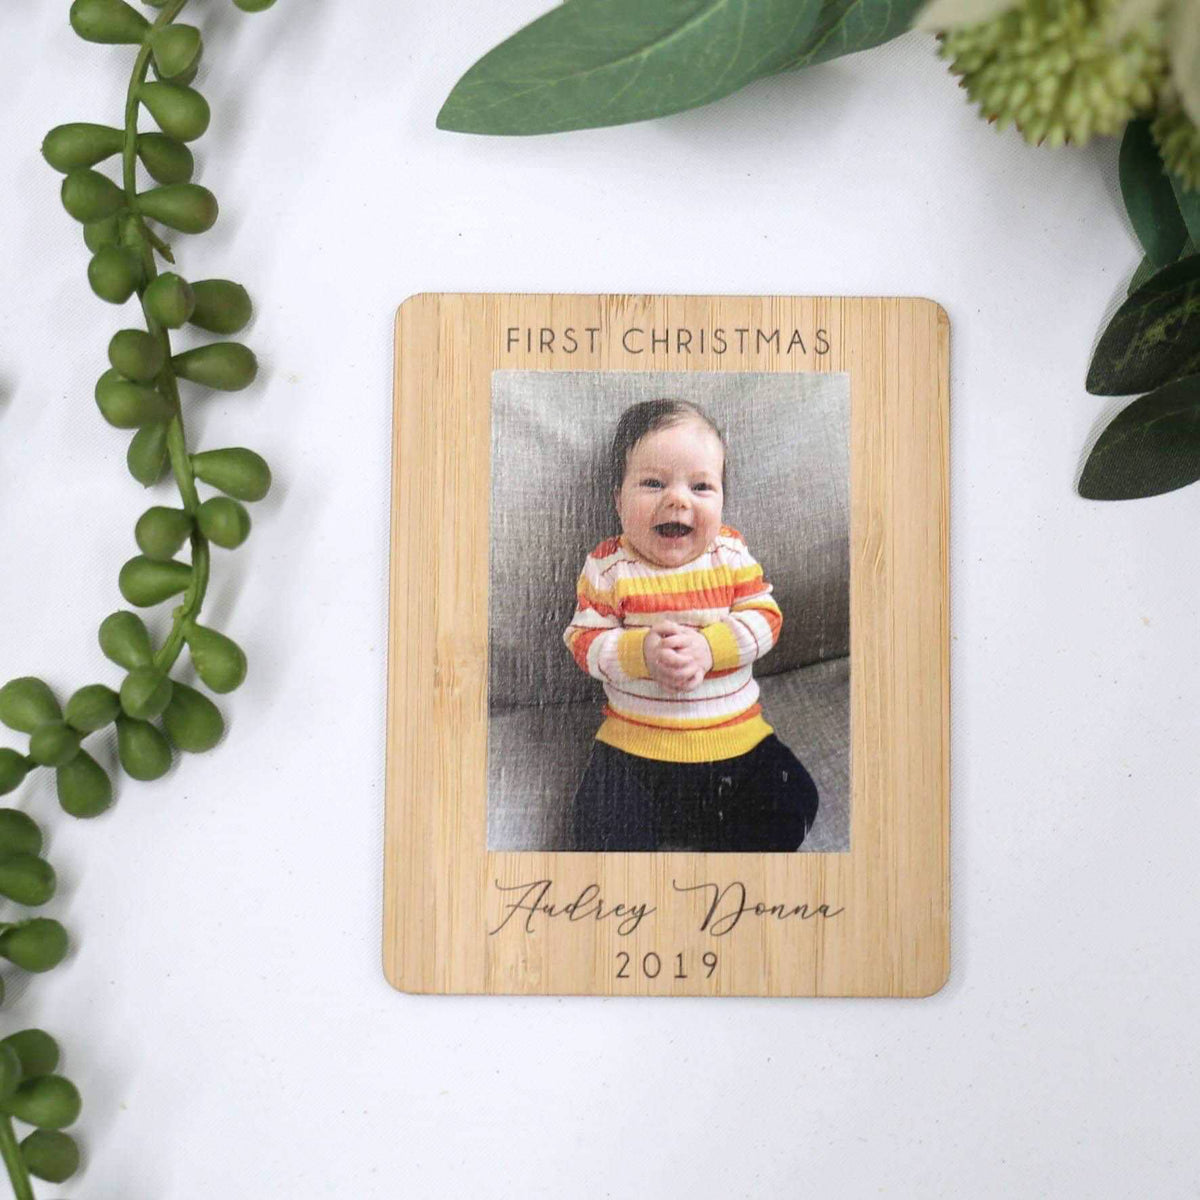 First Christmas Photo Magnet